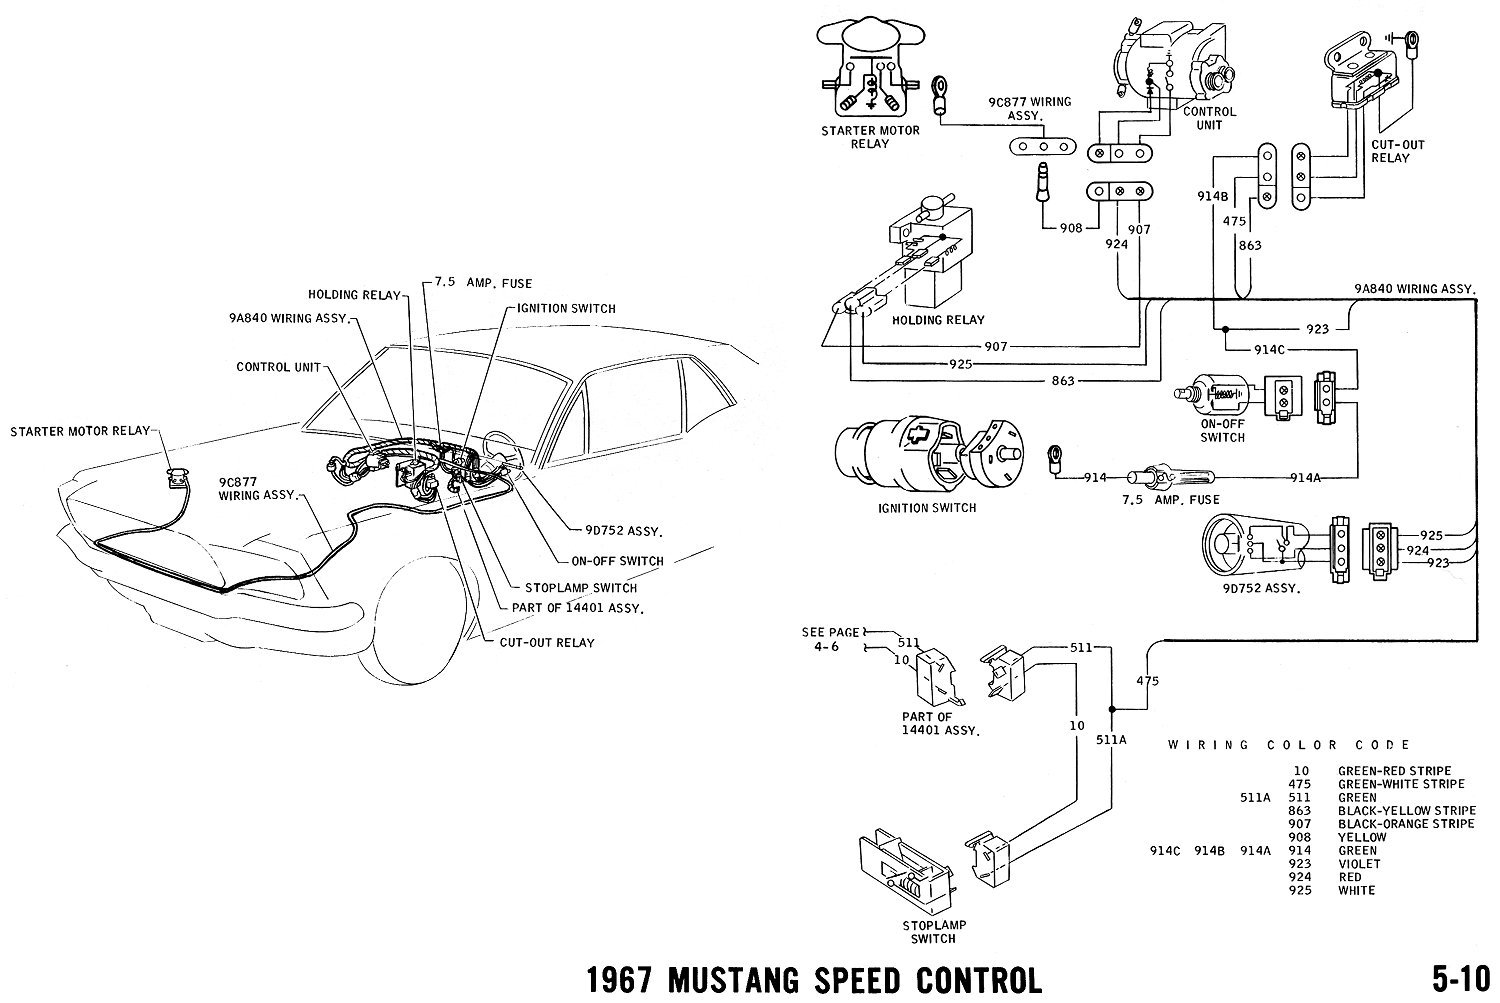 67speed 1967 mustang wiring and vacuum diagrams average joe restoration 1967 mustang ignition wiring diagram at gsmx.co